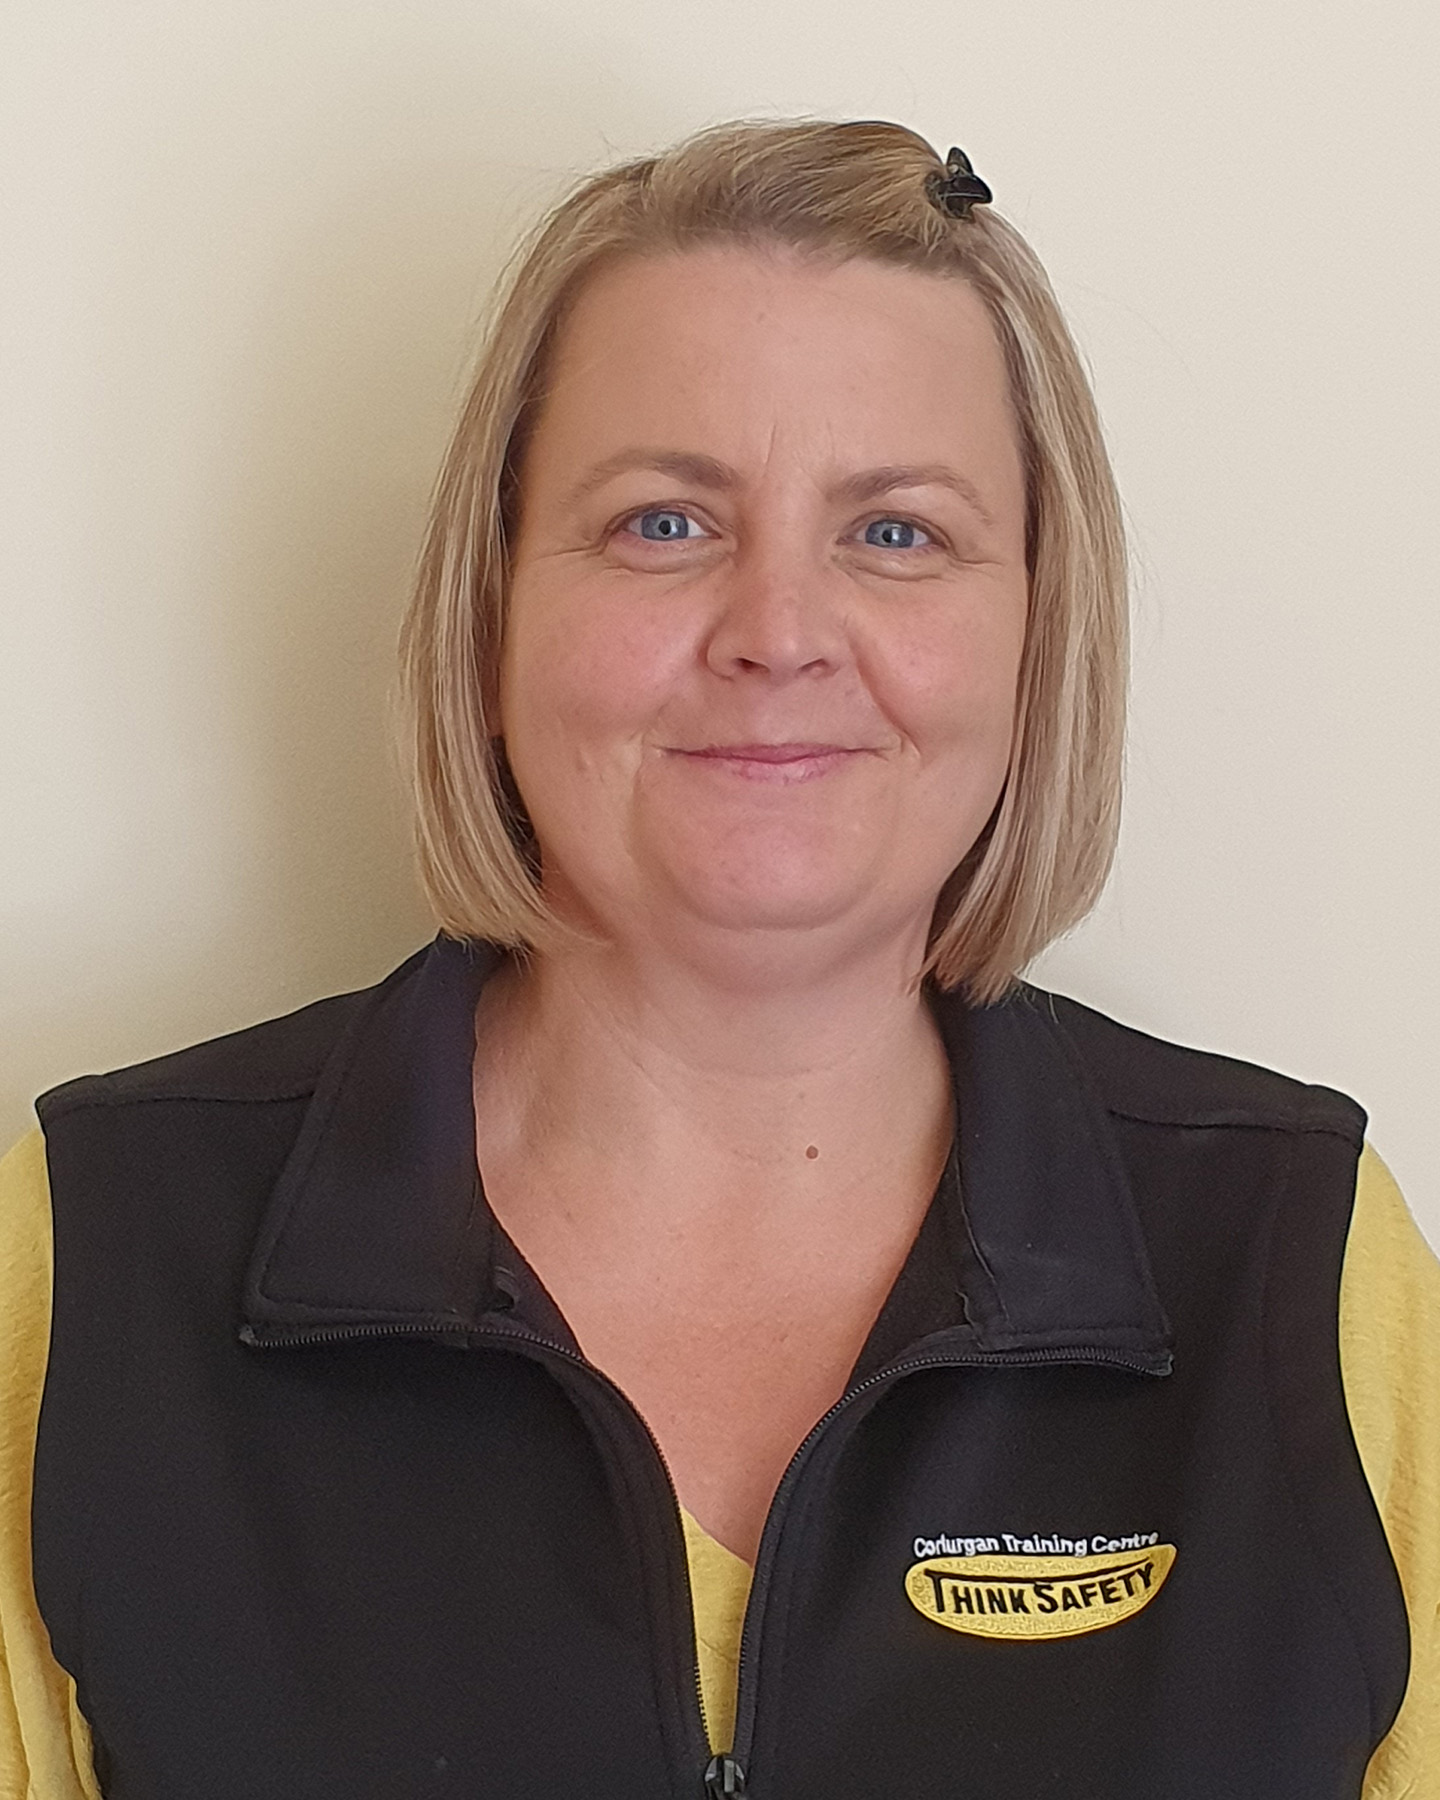 Louise Connor   Think Safety   Cavan